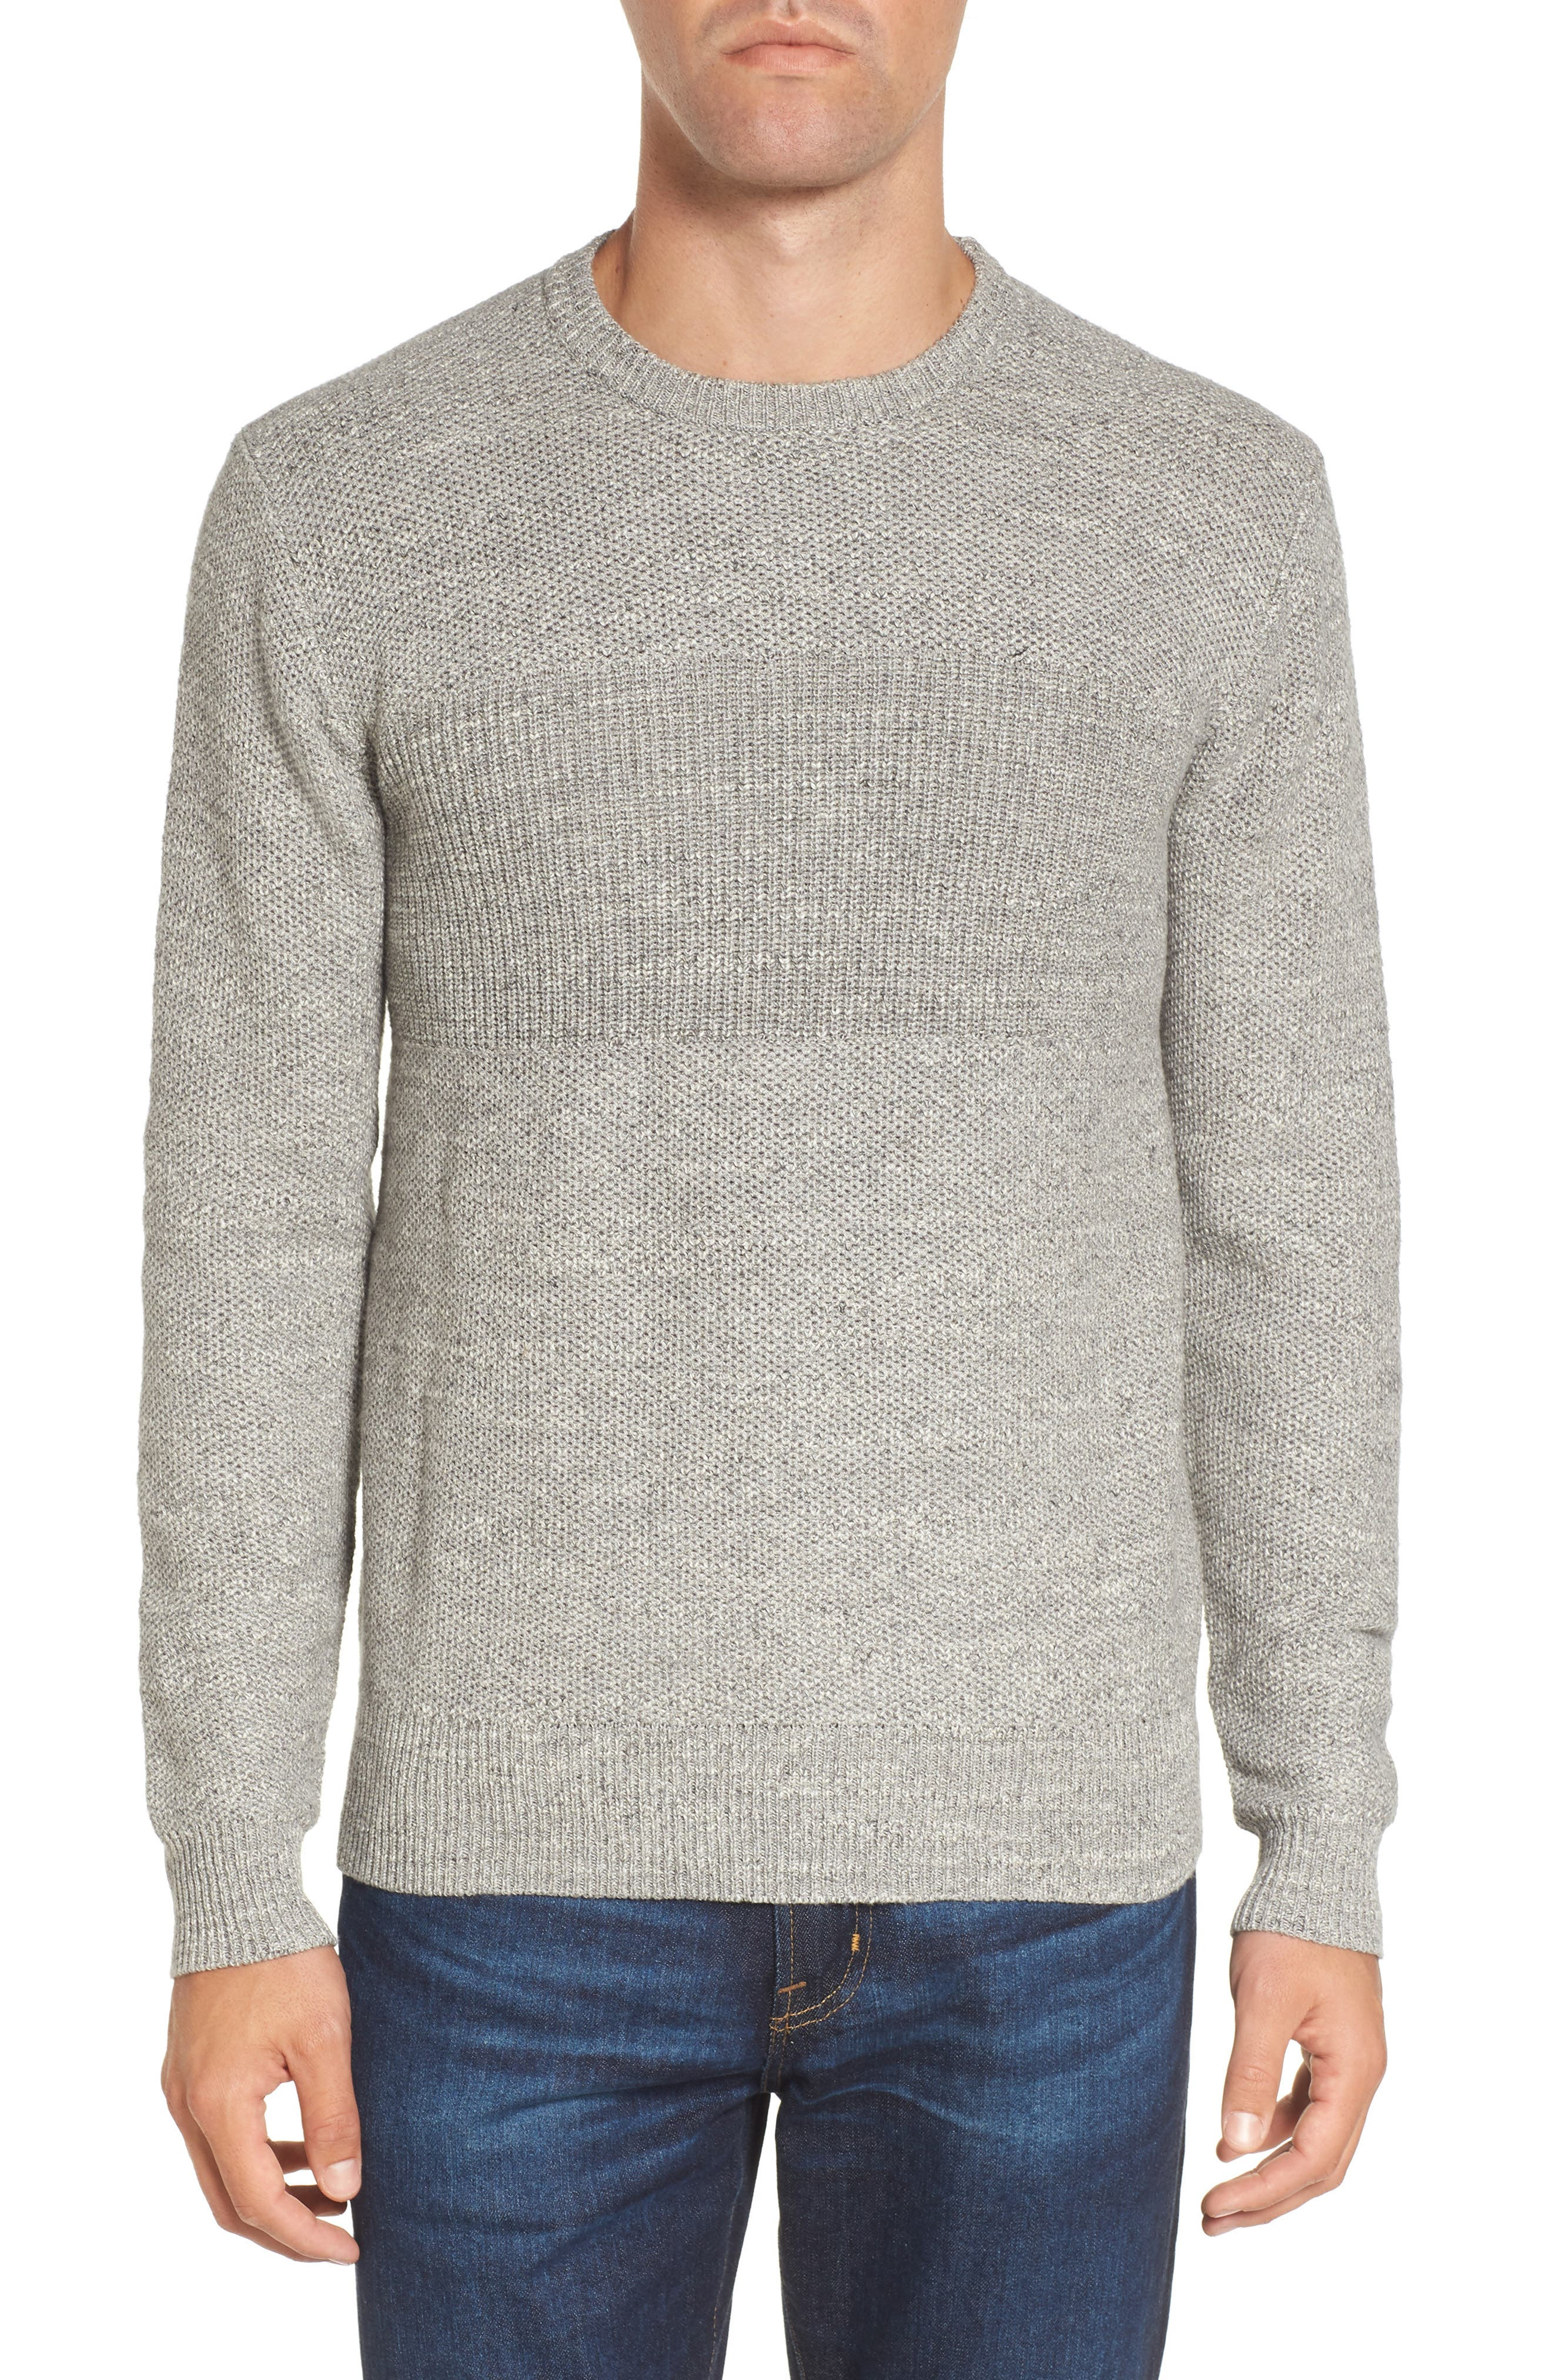 Ardsley Textured Sweater,                             Main thumbnail 1, color,                             Grey Heather